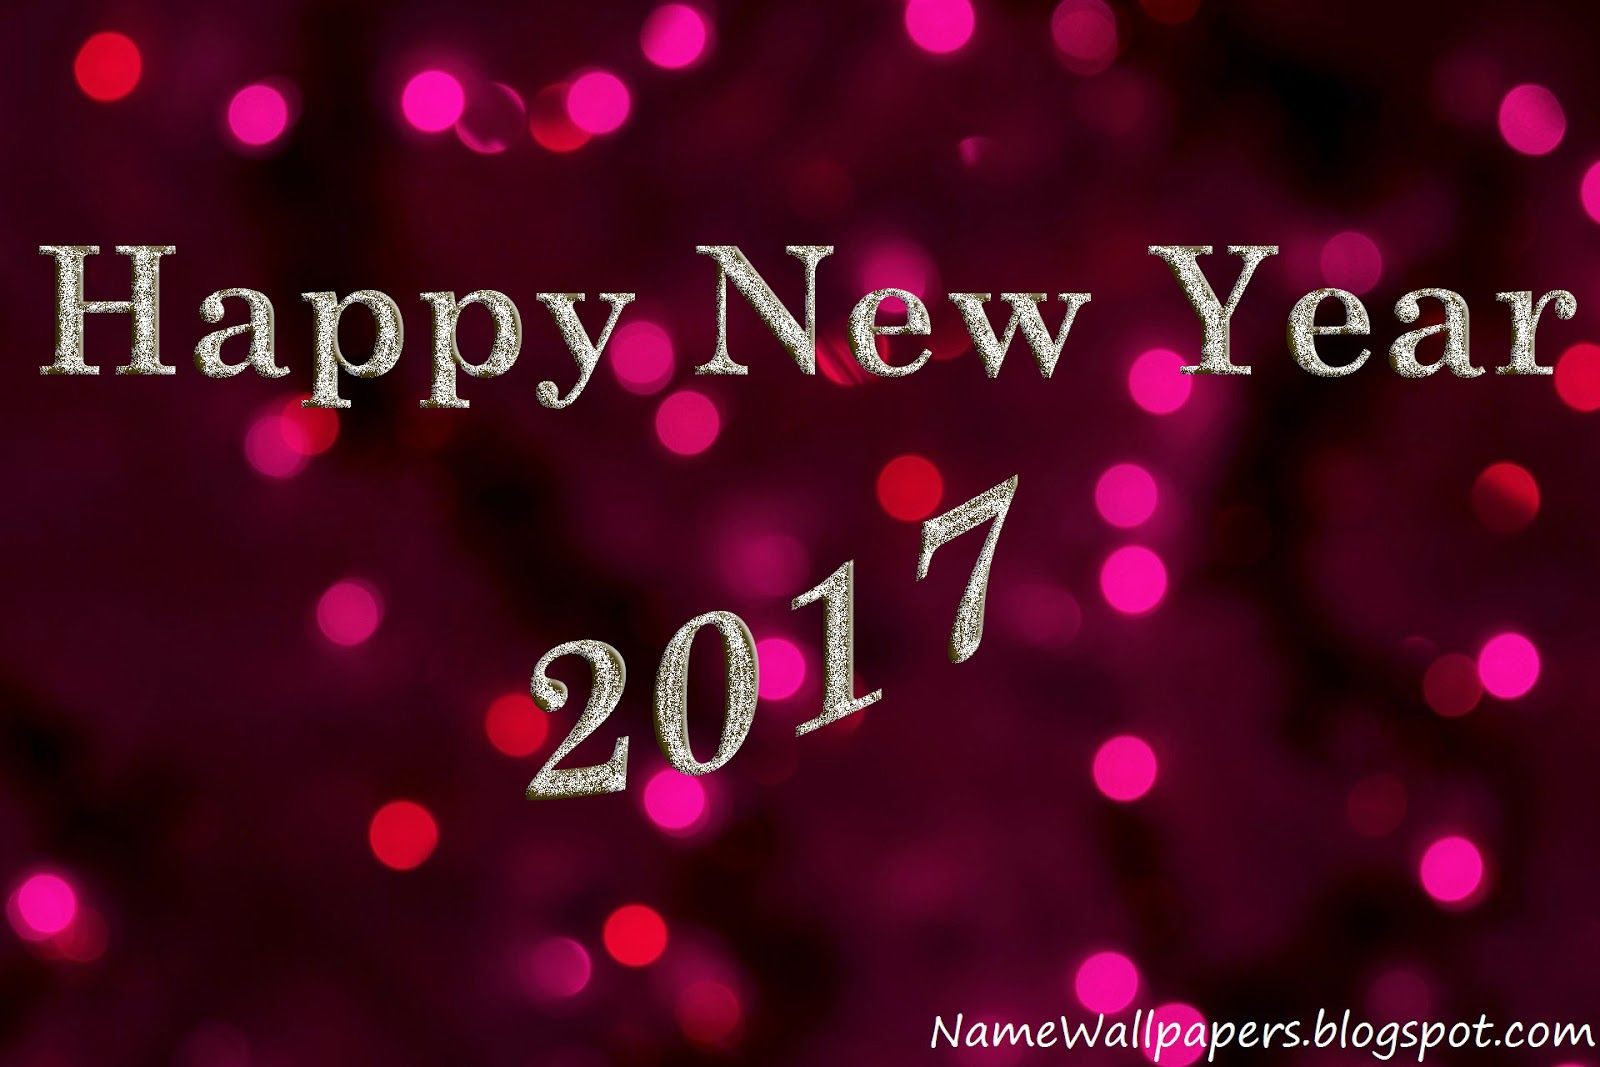 Happy New Year 2017 Wallpapers HD Images Pictures 2017 Download